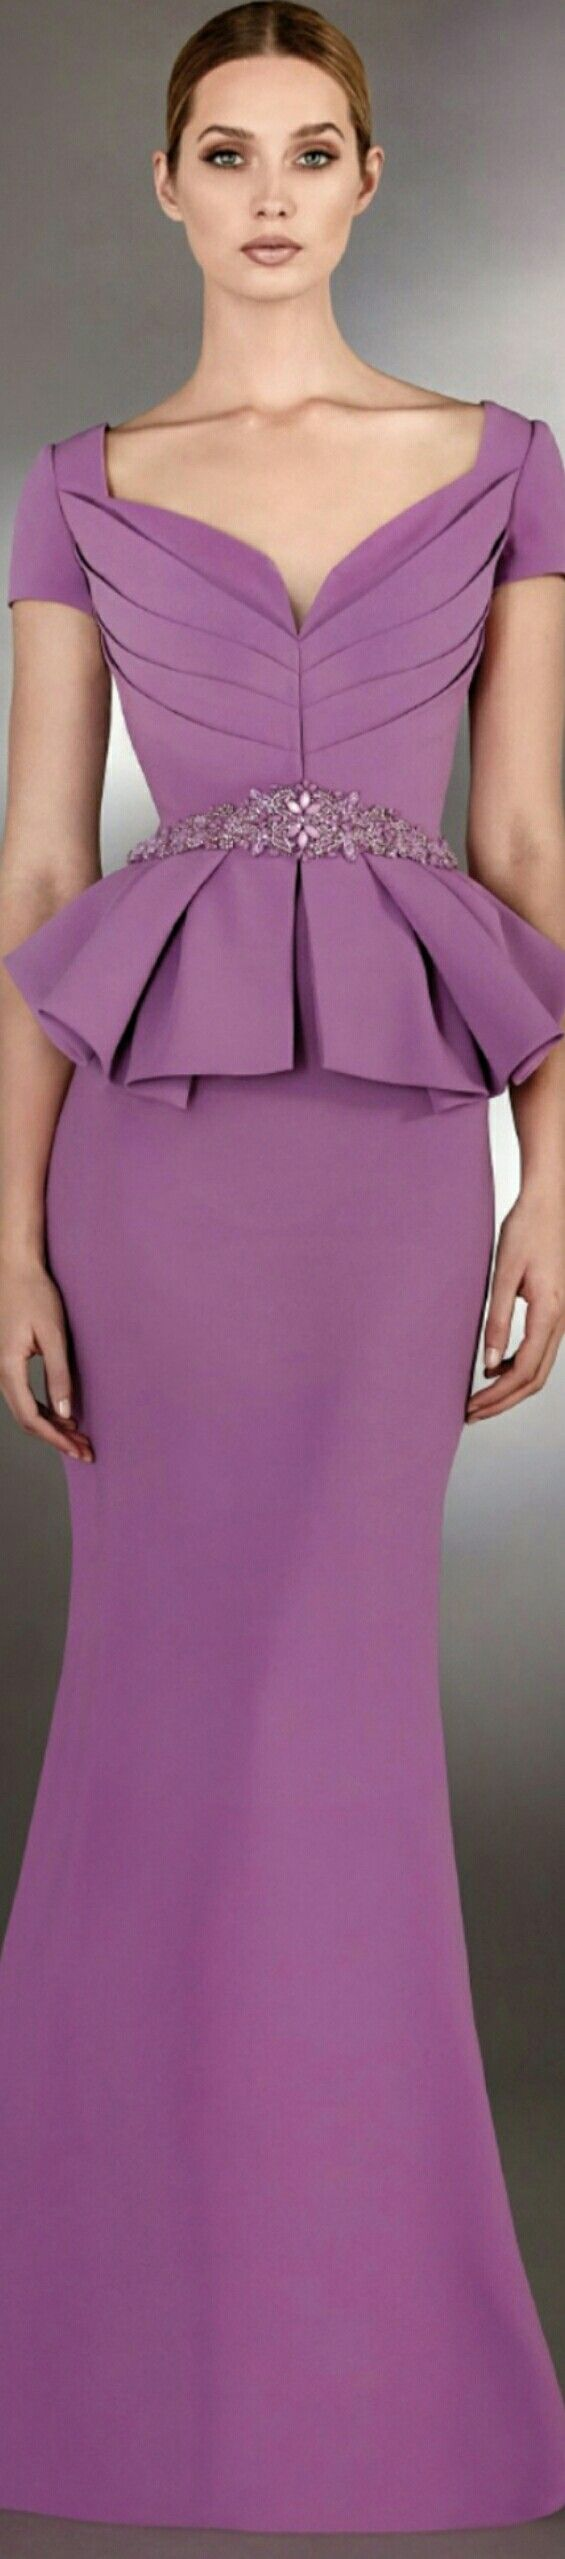 1645 best Lady&Dress images on Pinterest | Party outfits, Curve ...